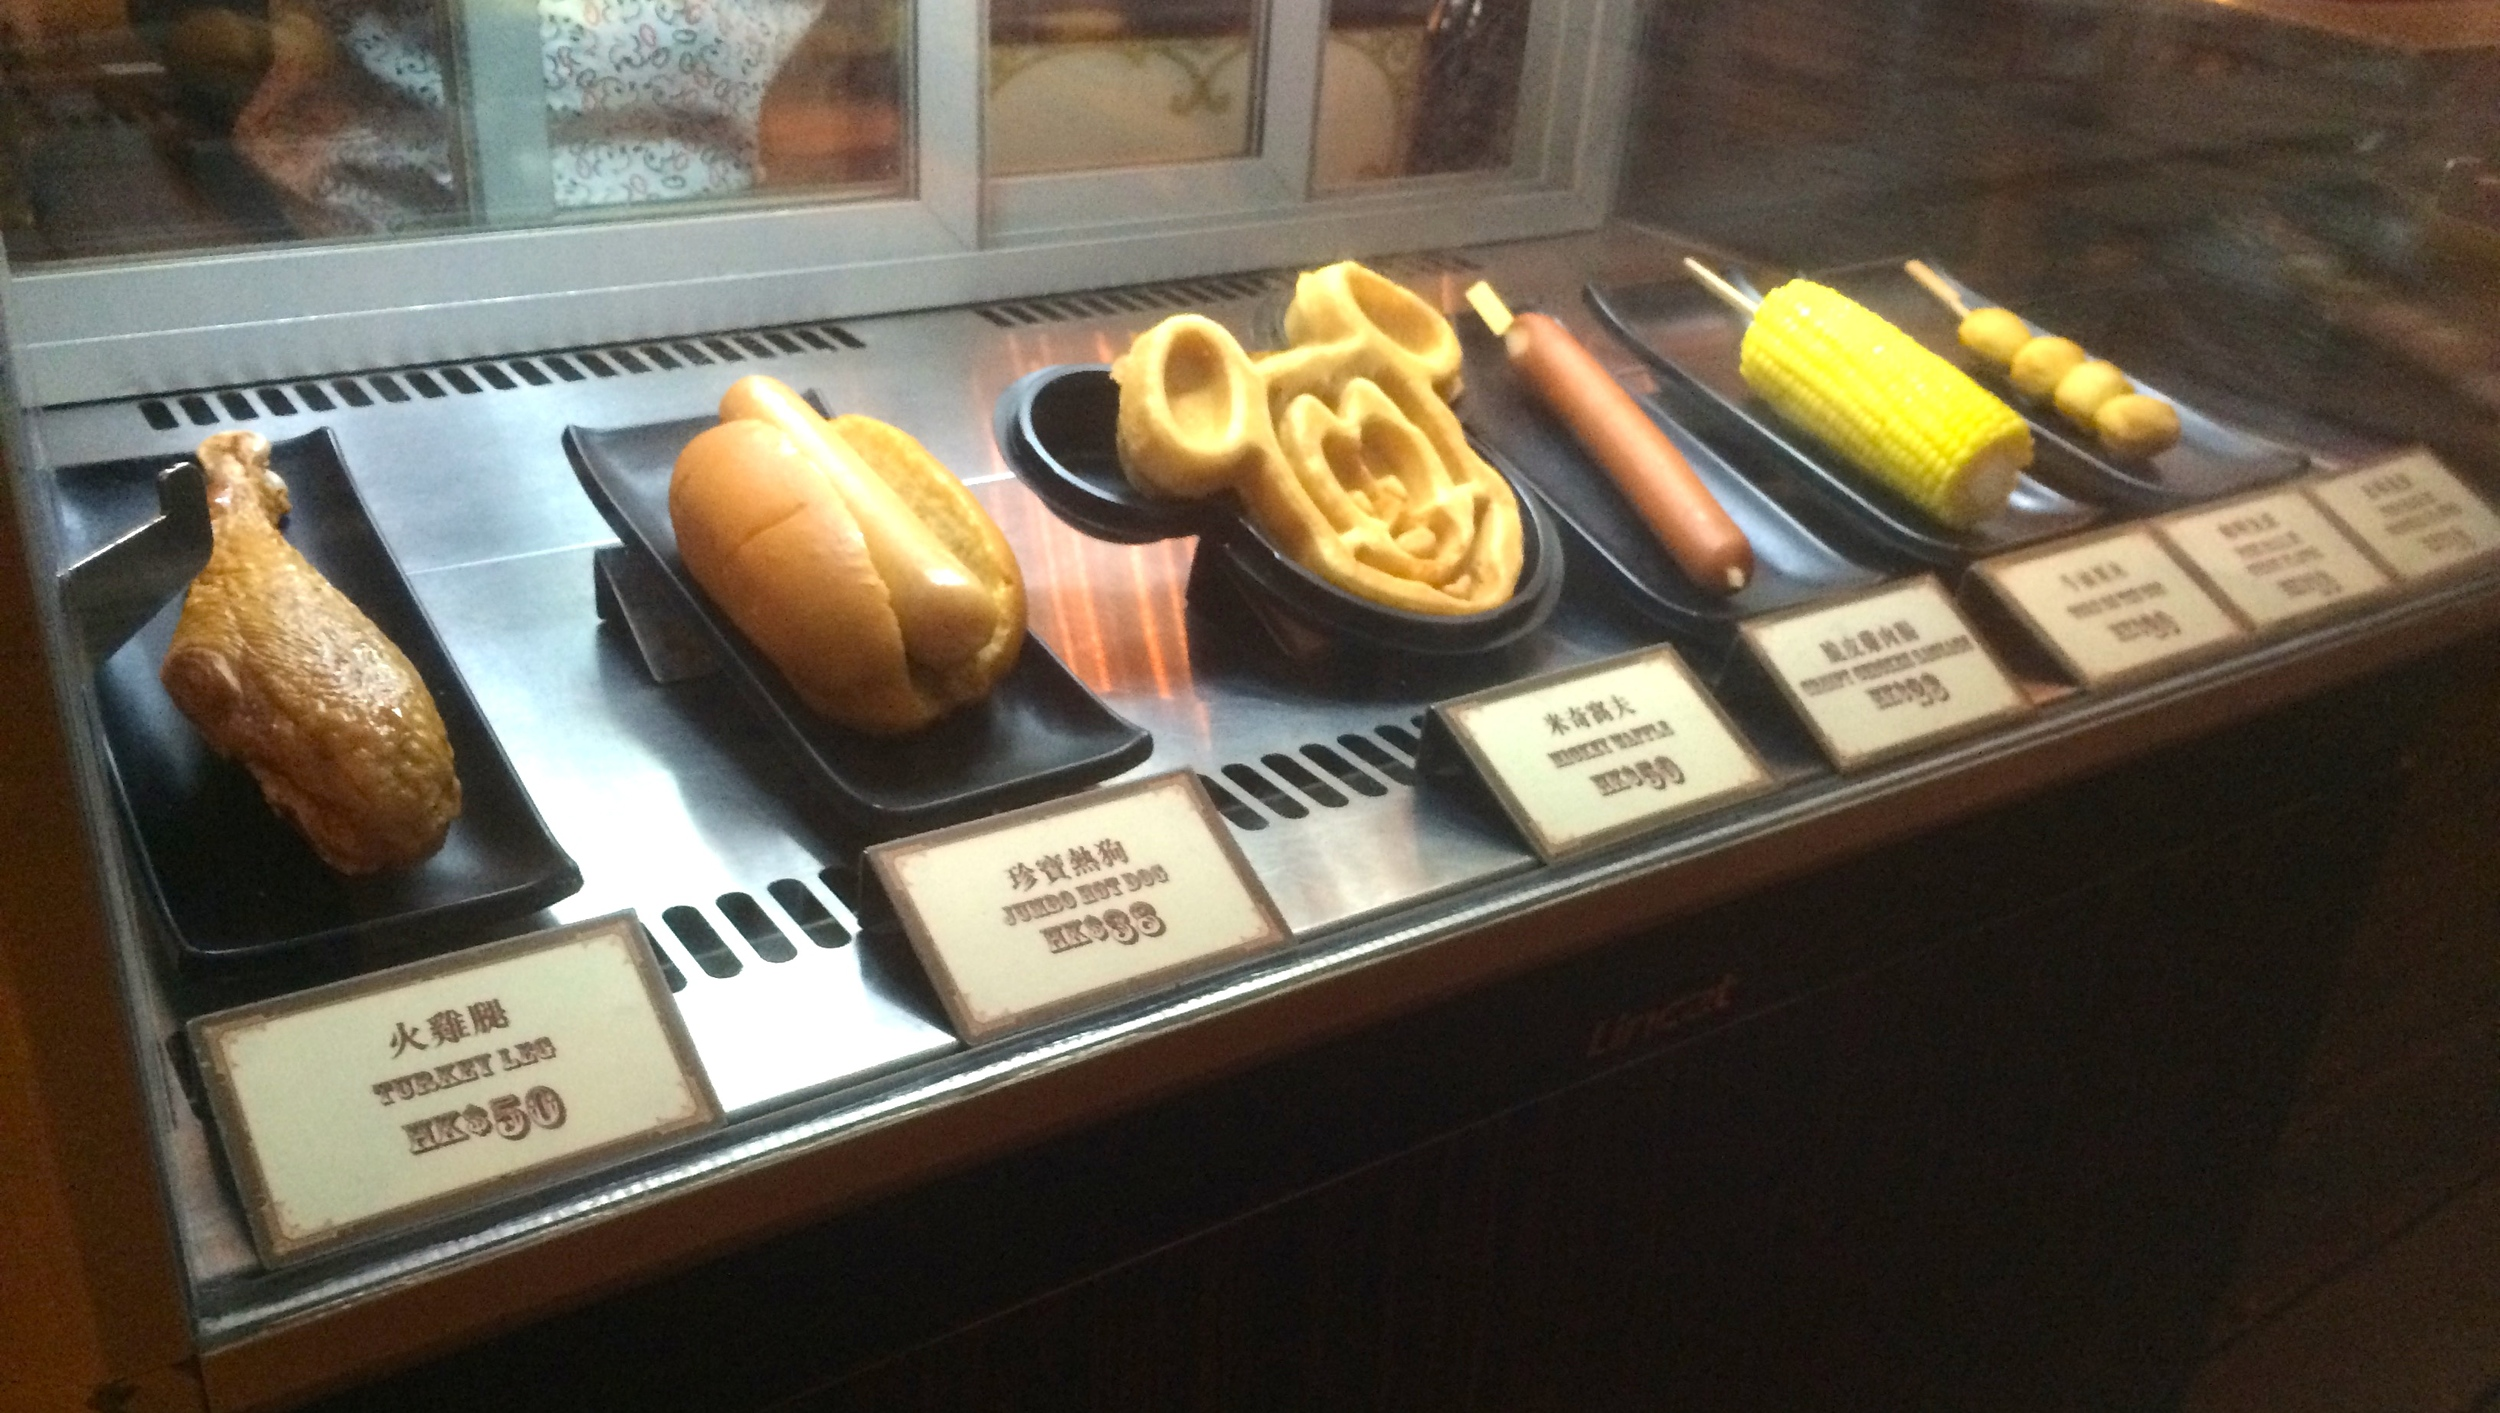 well, this is all plastic....maybe that's why it doesn't look very appetizing?